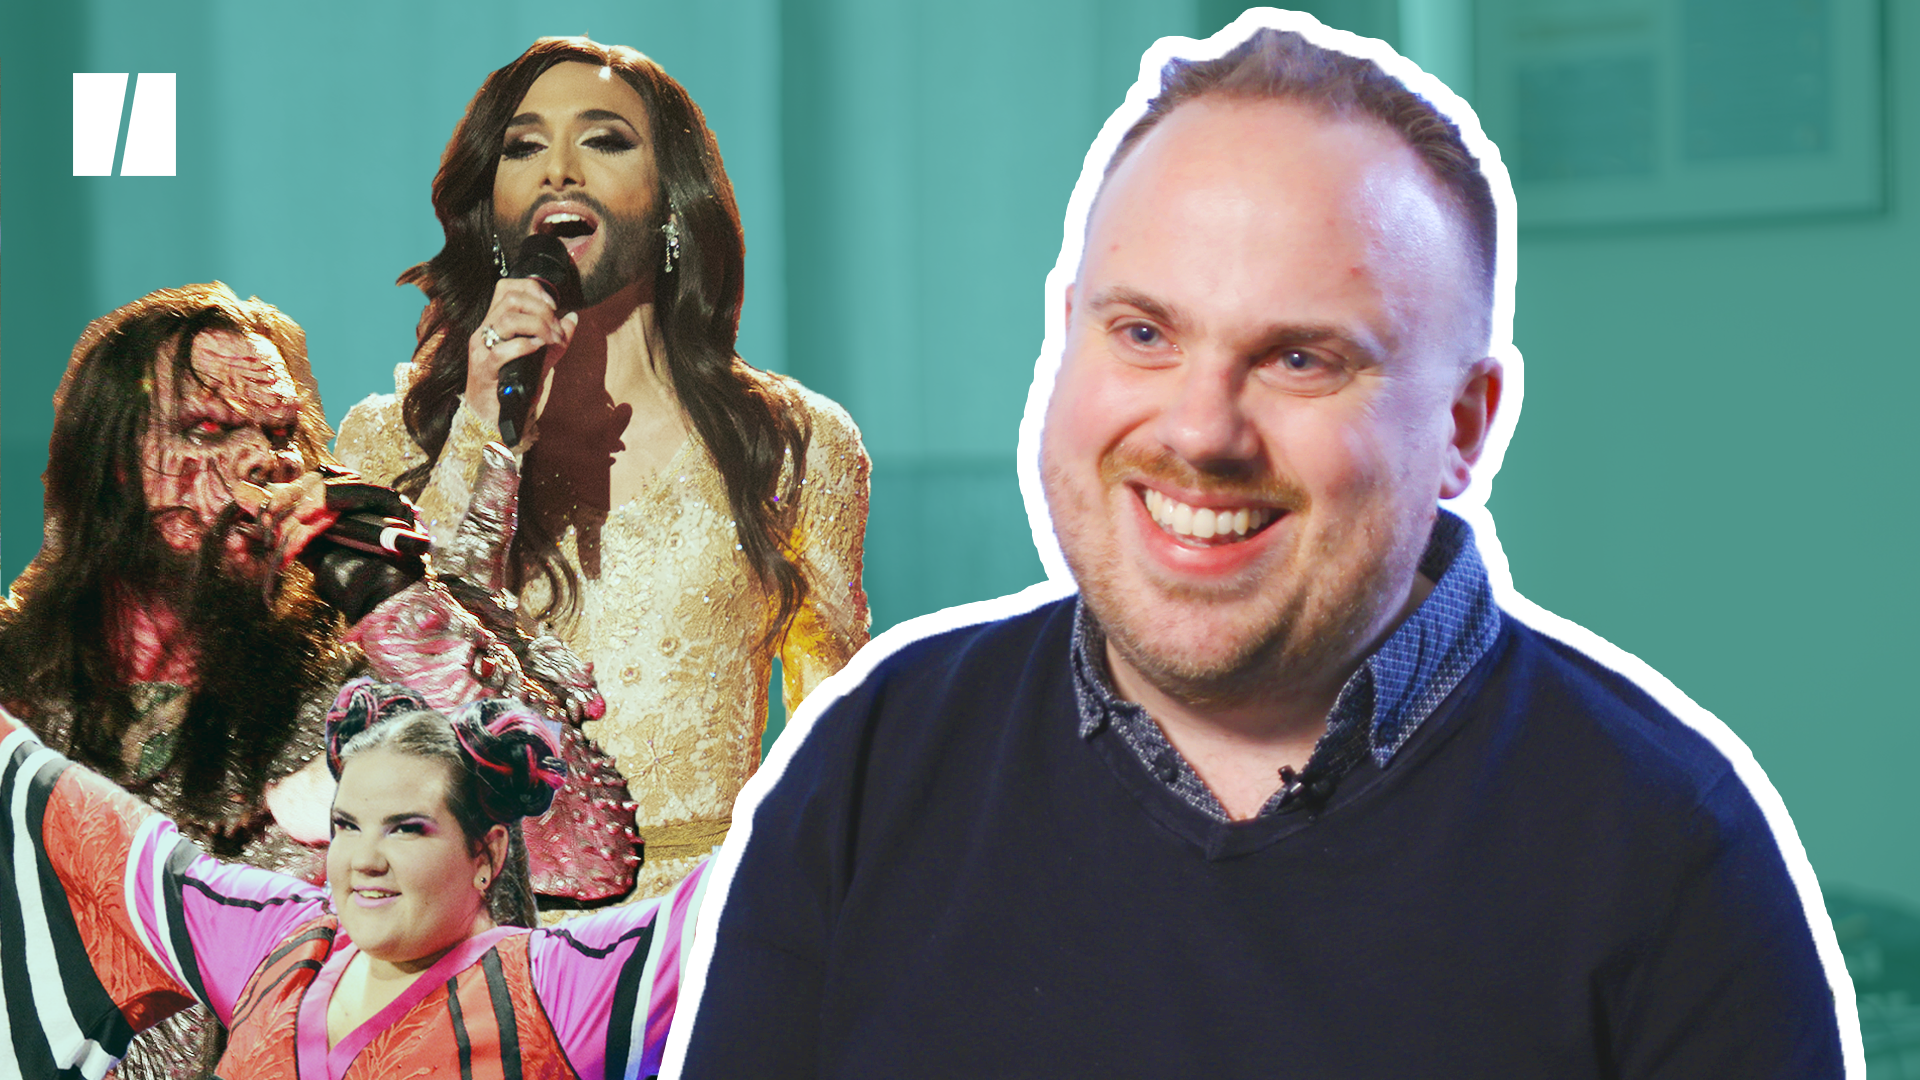 Eurovision 2019: The 17 Most Ridiculous Moments From The Song Contest